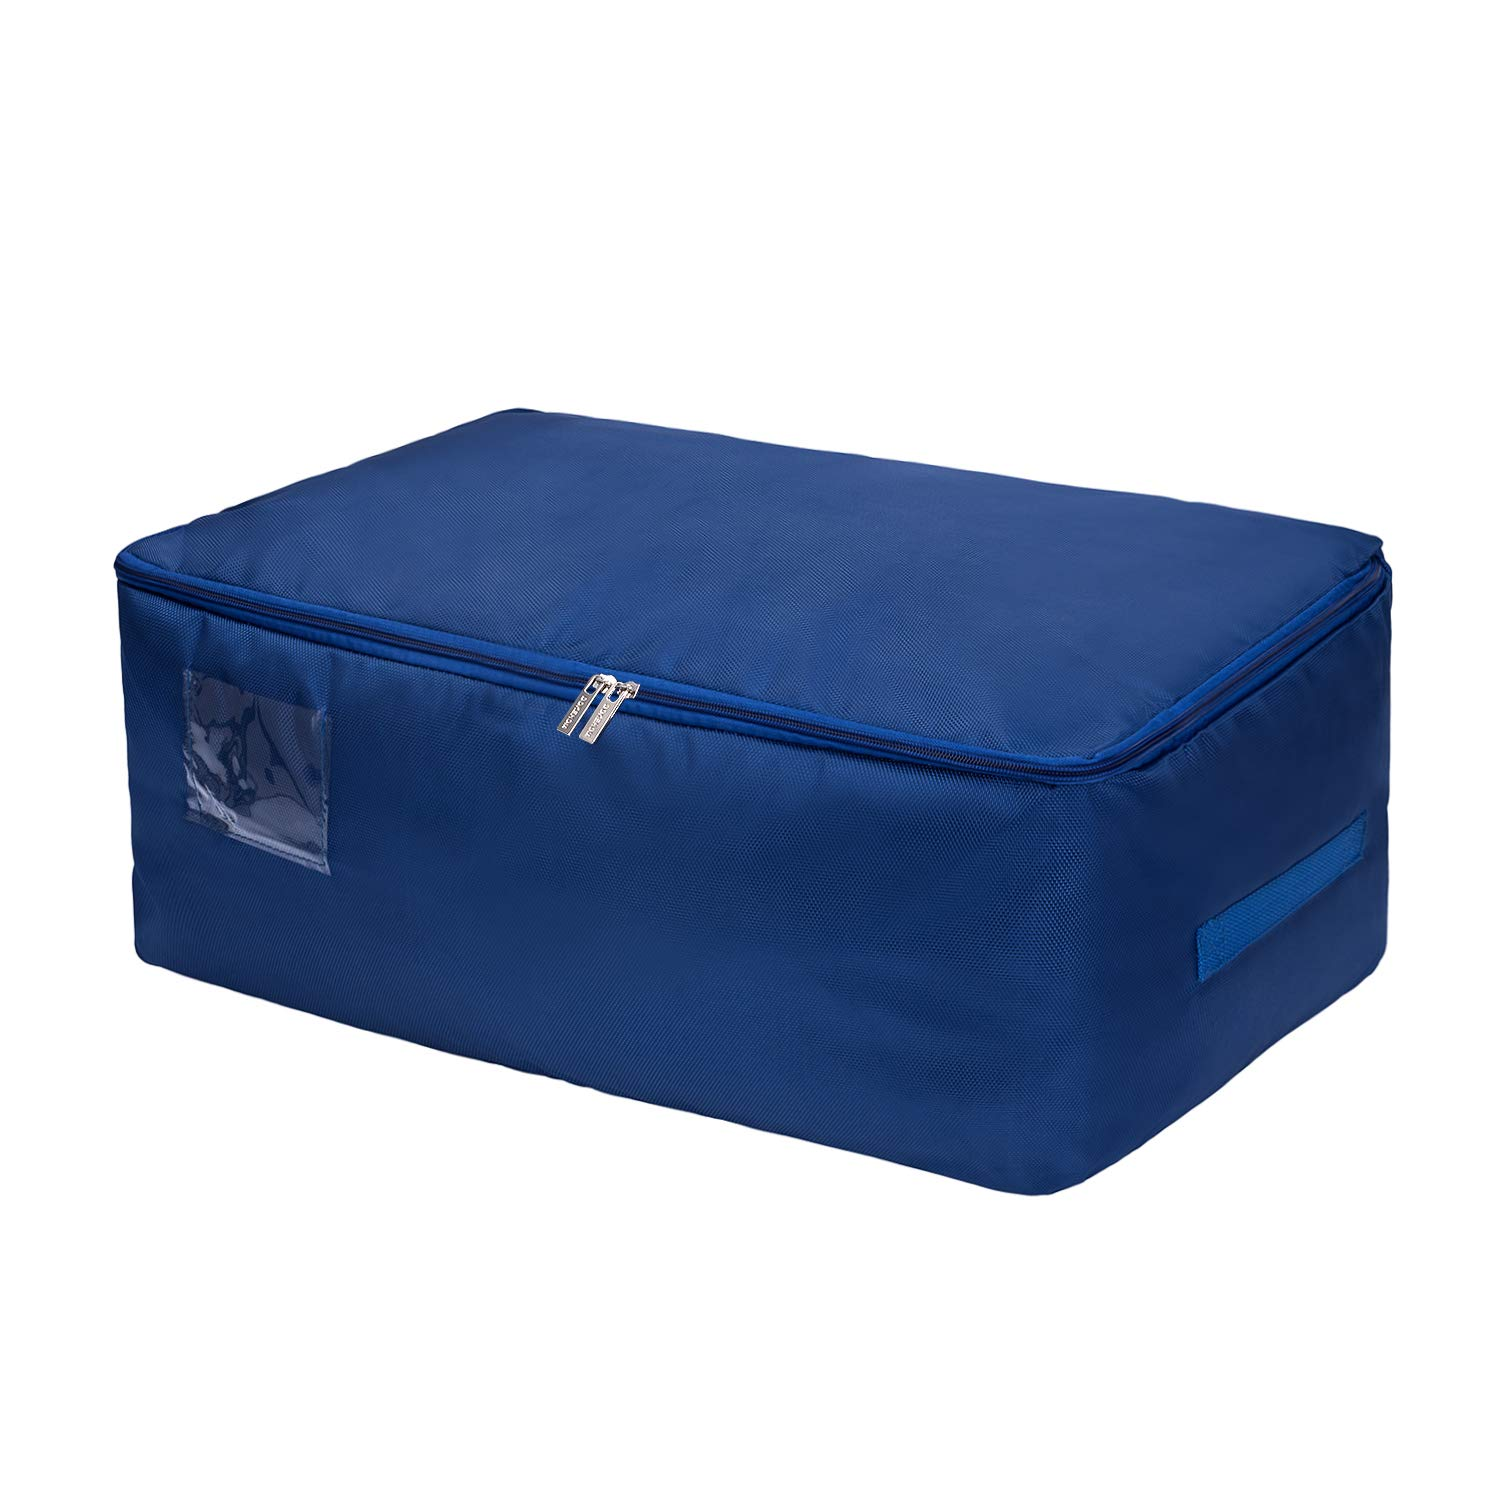 Dark Blue//L, Set of 3 Moisture proof DOKEHOM DKA1014DBLG3 3-Pieces Large Under Bed Storage Bag Thick Ultra Size Fabric Clothes Bag